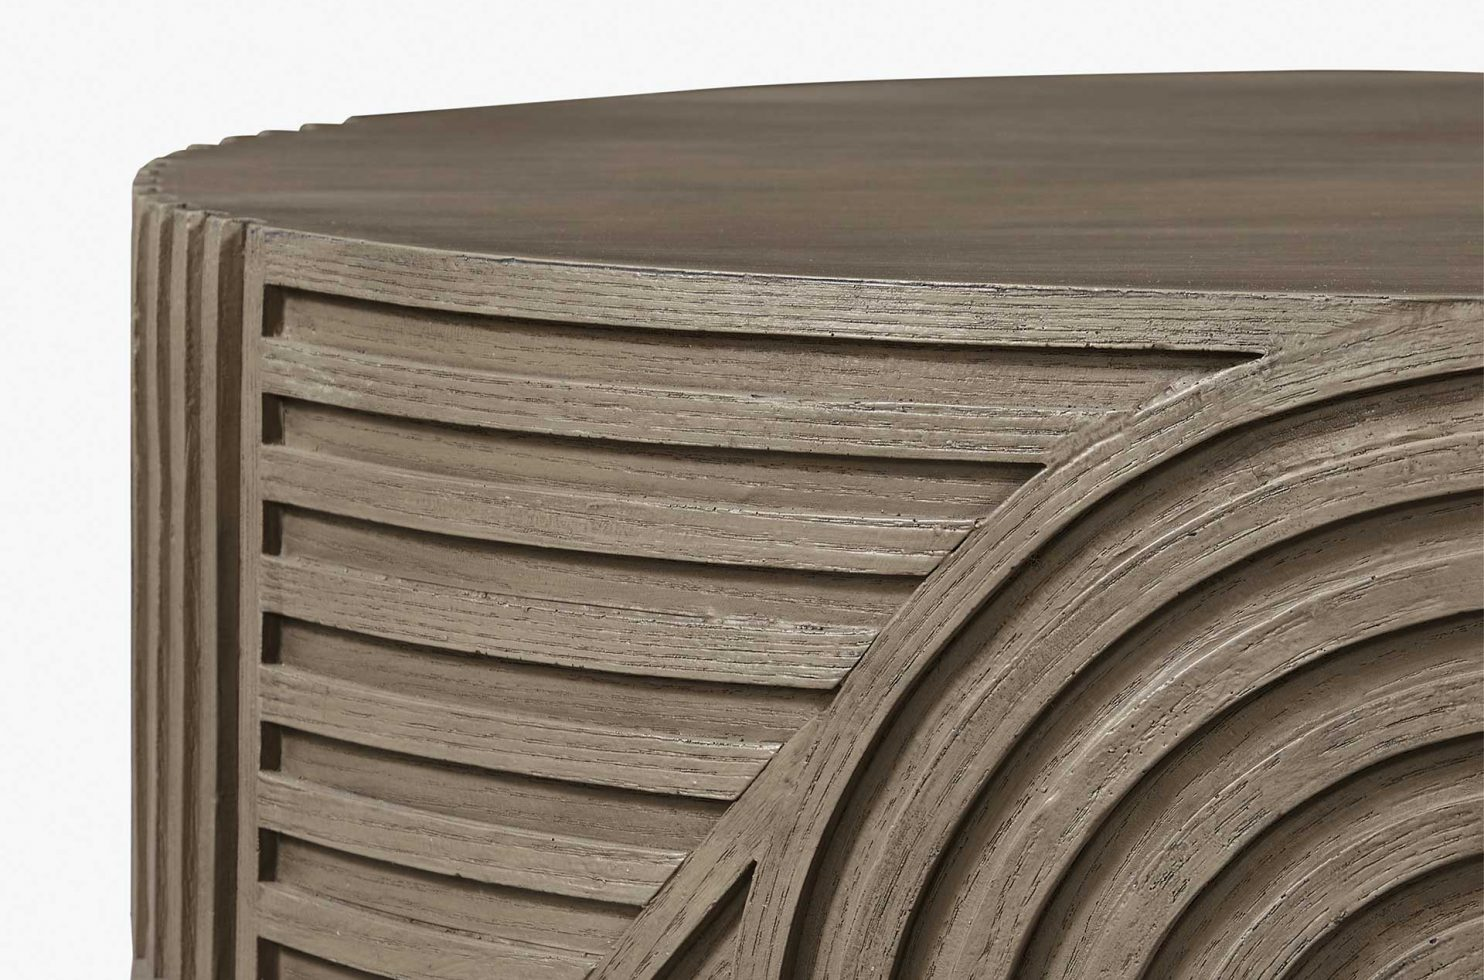 prov frp serenity energy textured round table S1568804146 dtl9 web